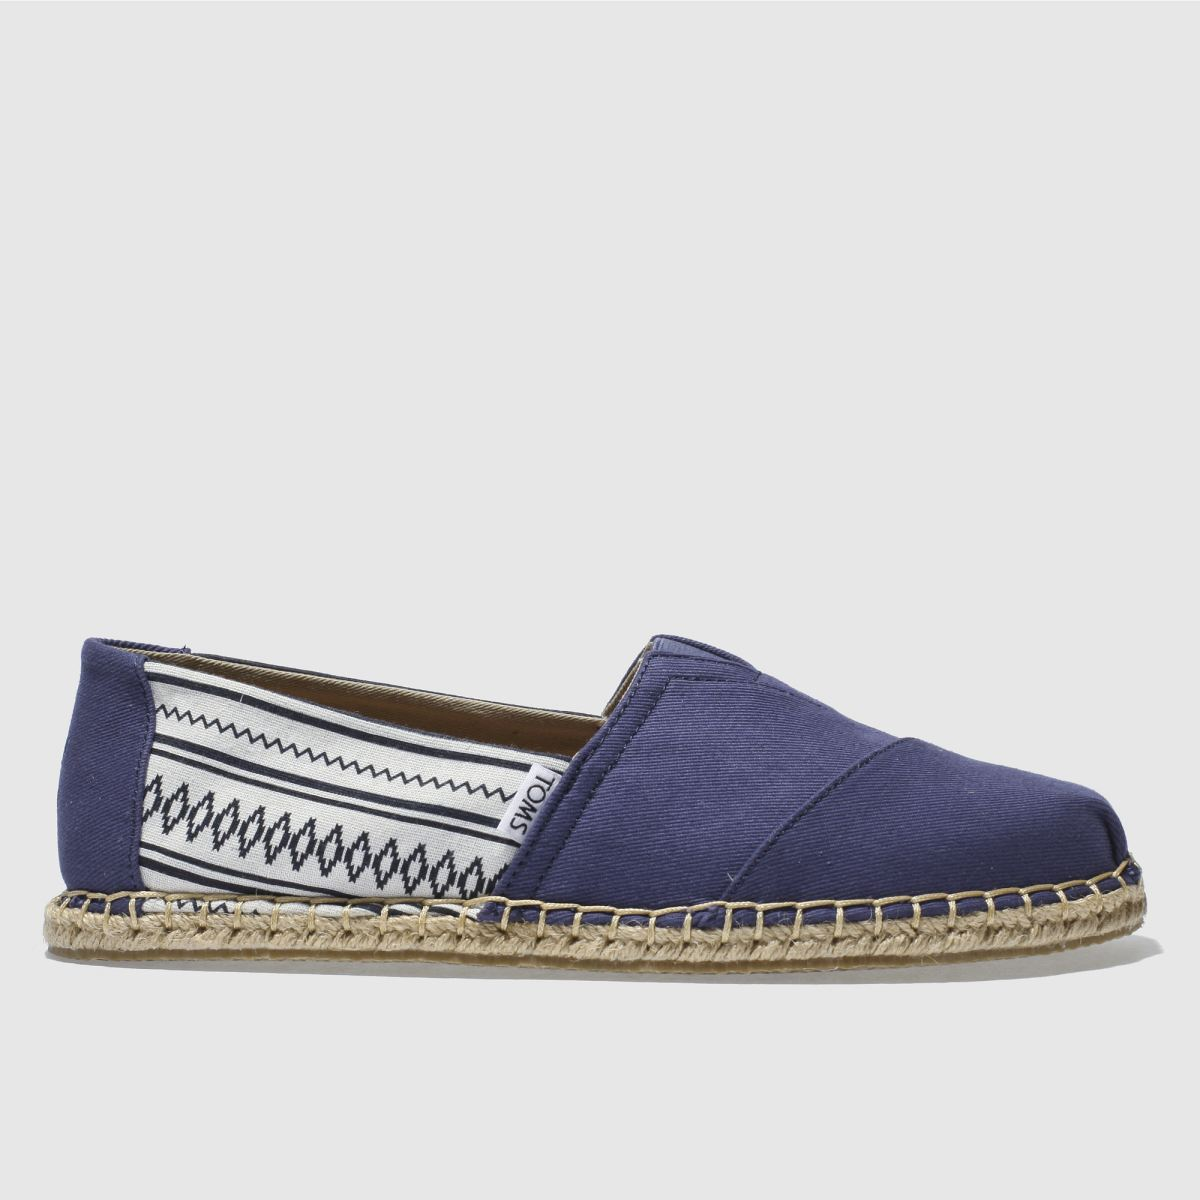 TOMS Toms Navy & White Classic Shoes